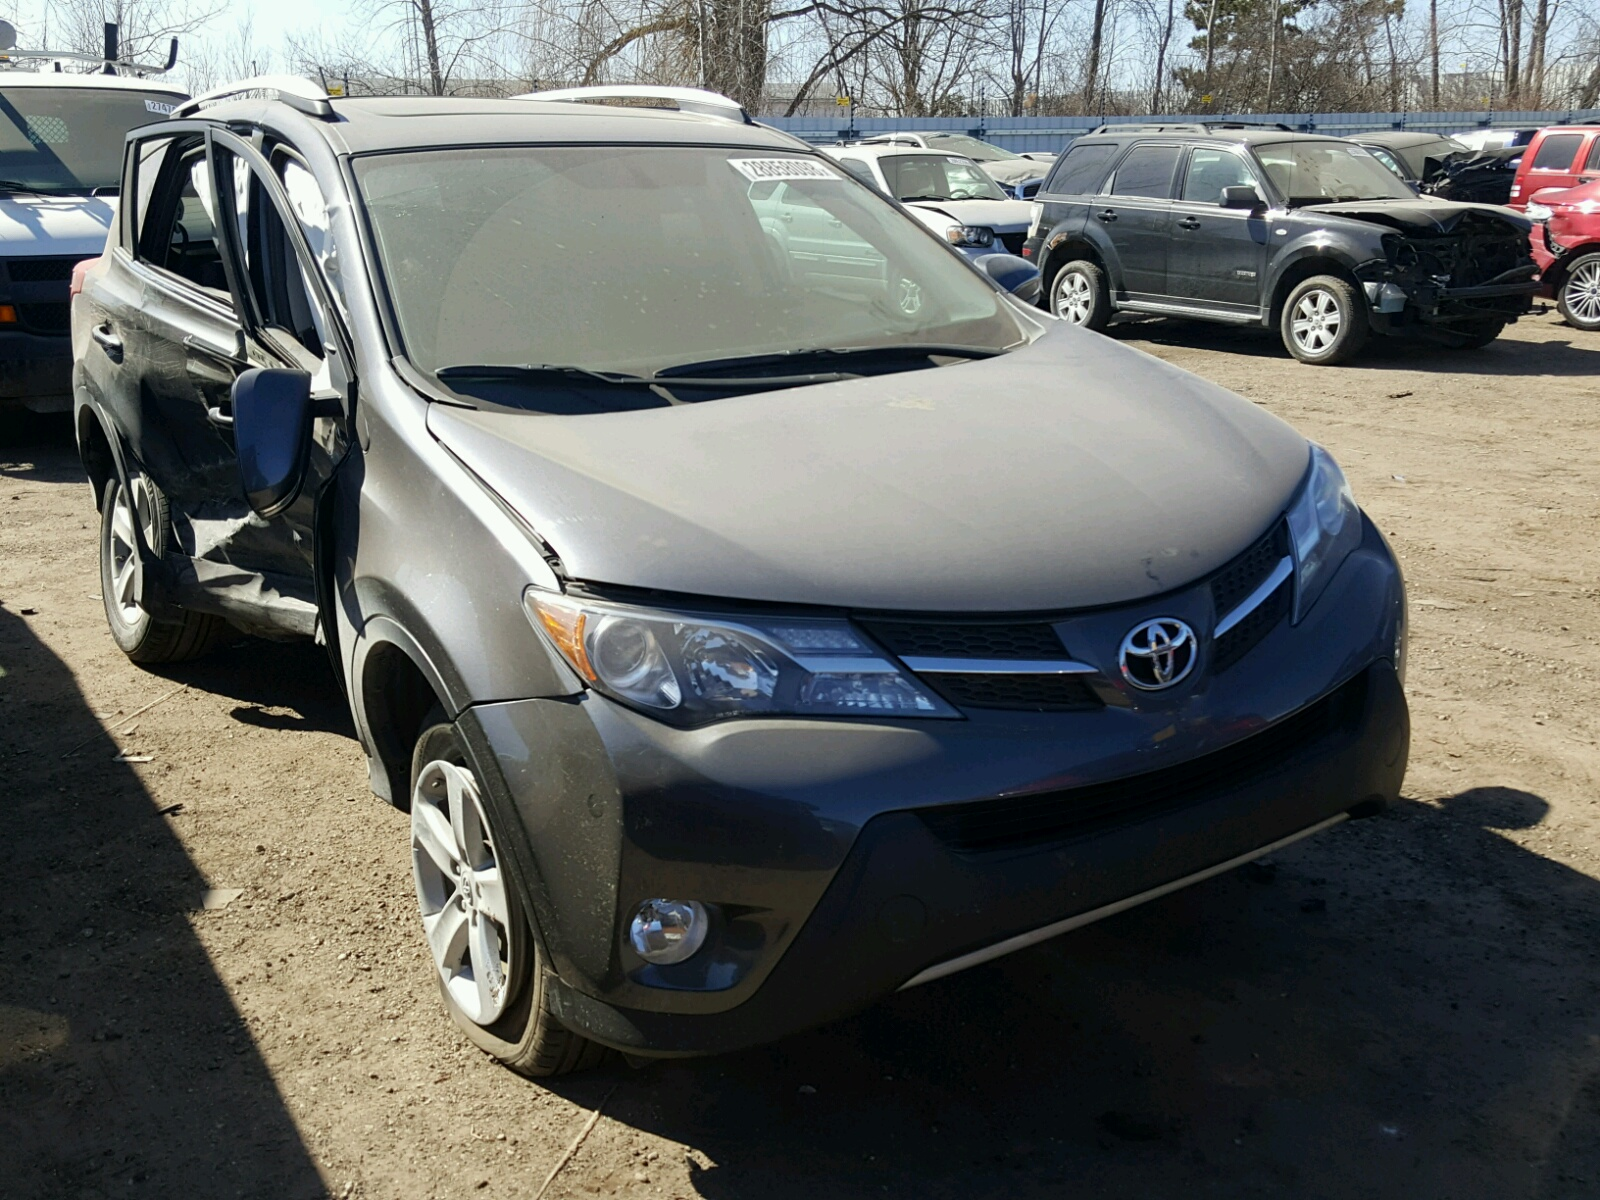 2014 Toyota Corolla Configurations >> Auto Auction Ended on VIN: RN23094124 1978 TOYOTA PICKUP in CA - MARTINEZ